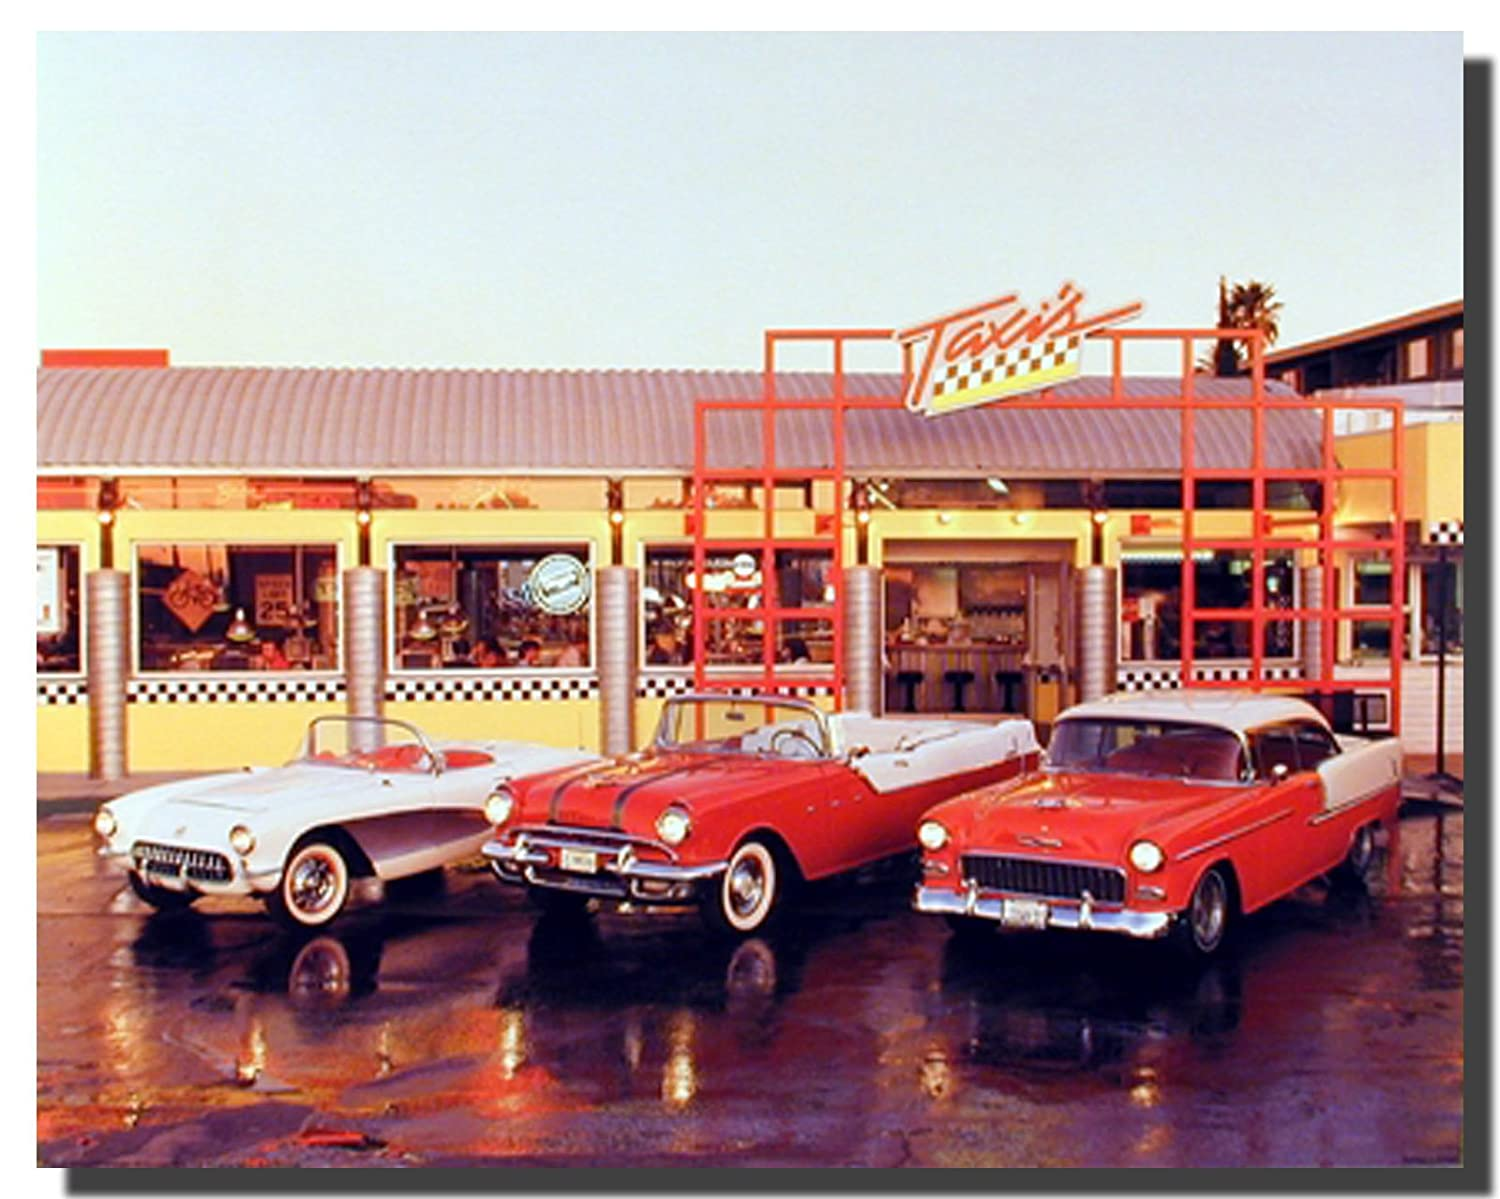 Amazon.com: Classic Vintage Cars At Taxi Stand Transportation Wall ...